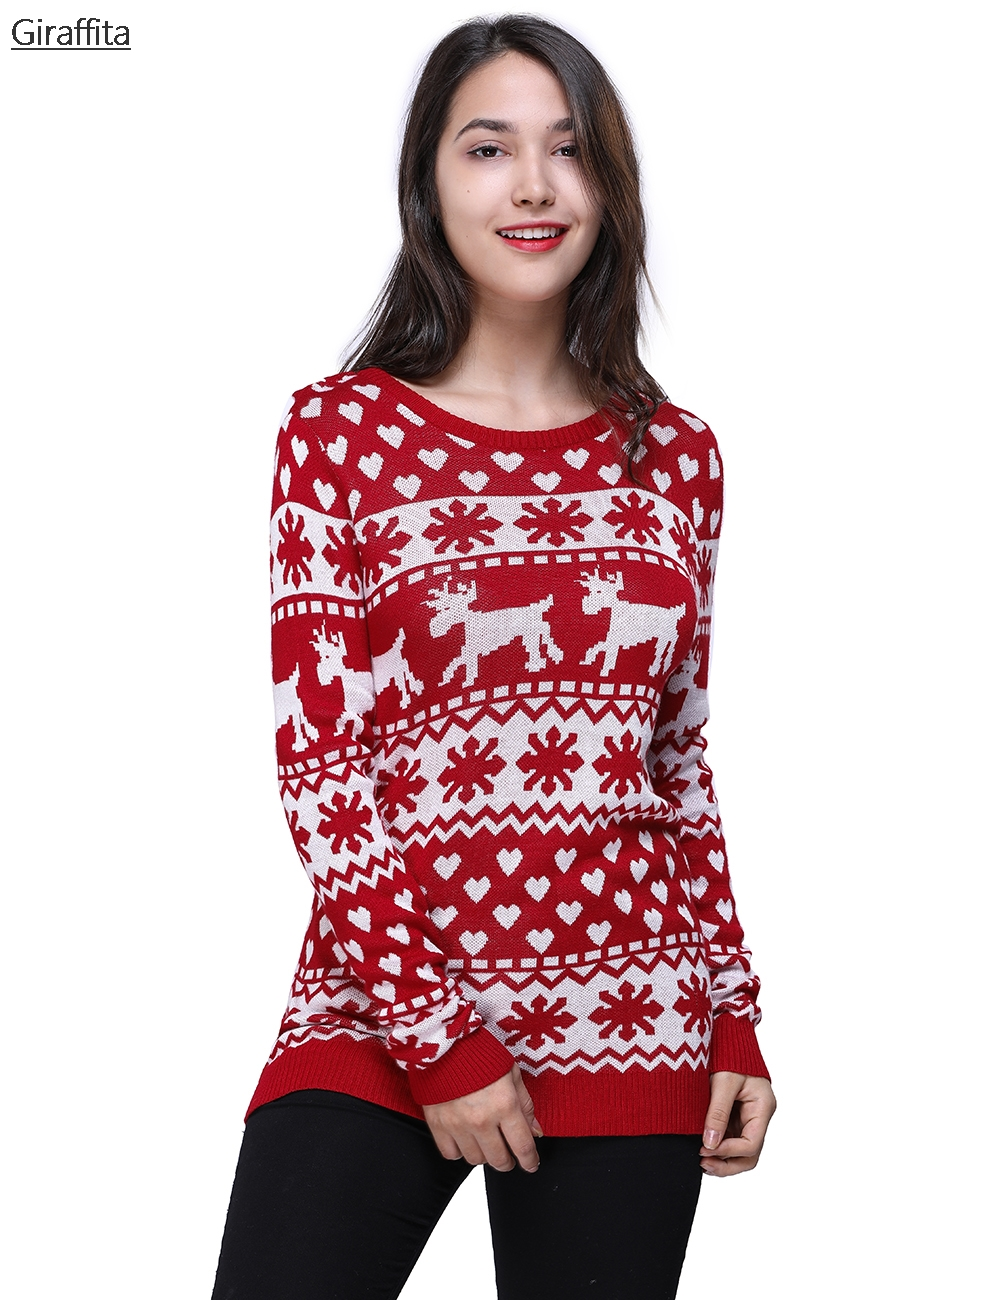 Beauty women Latest Christmas Handmade Perfect sweater knitting Pretty Simple Necessaries